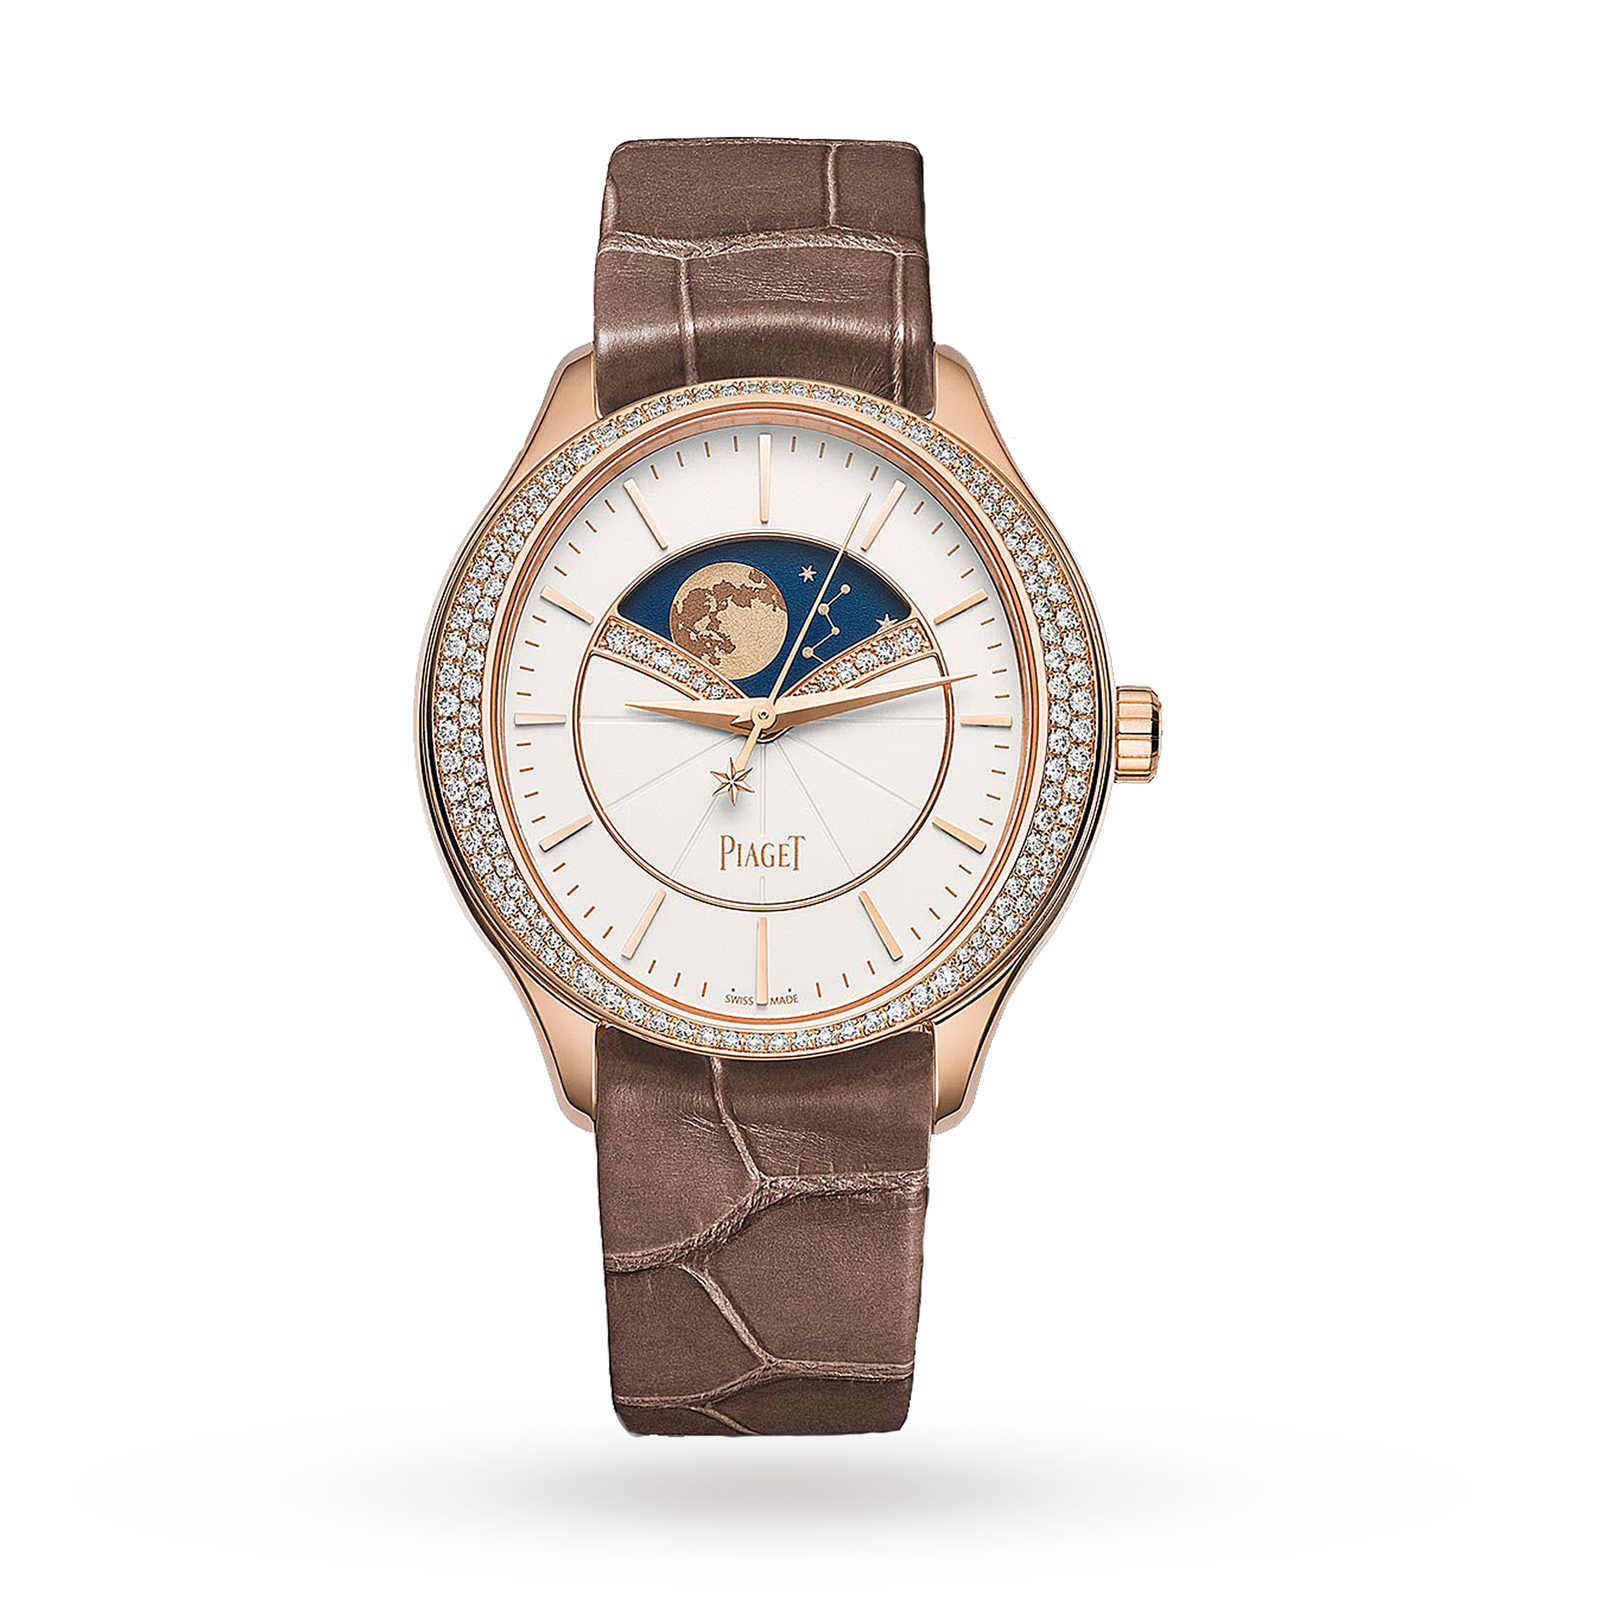 gold bucherer brands watches altiplano watch piaget mens rose